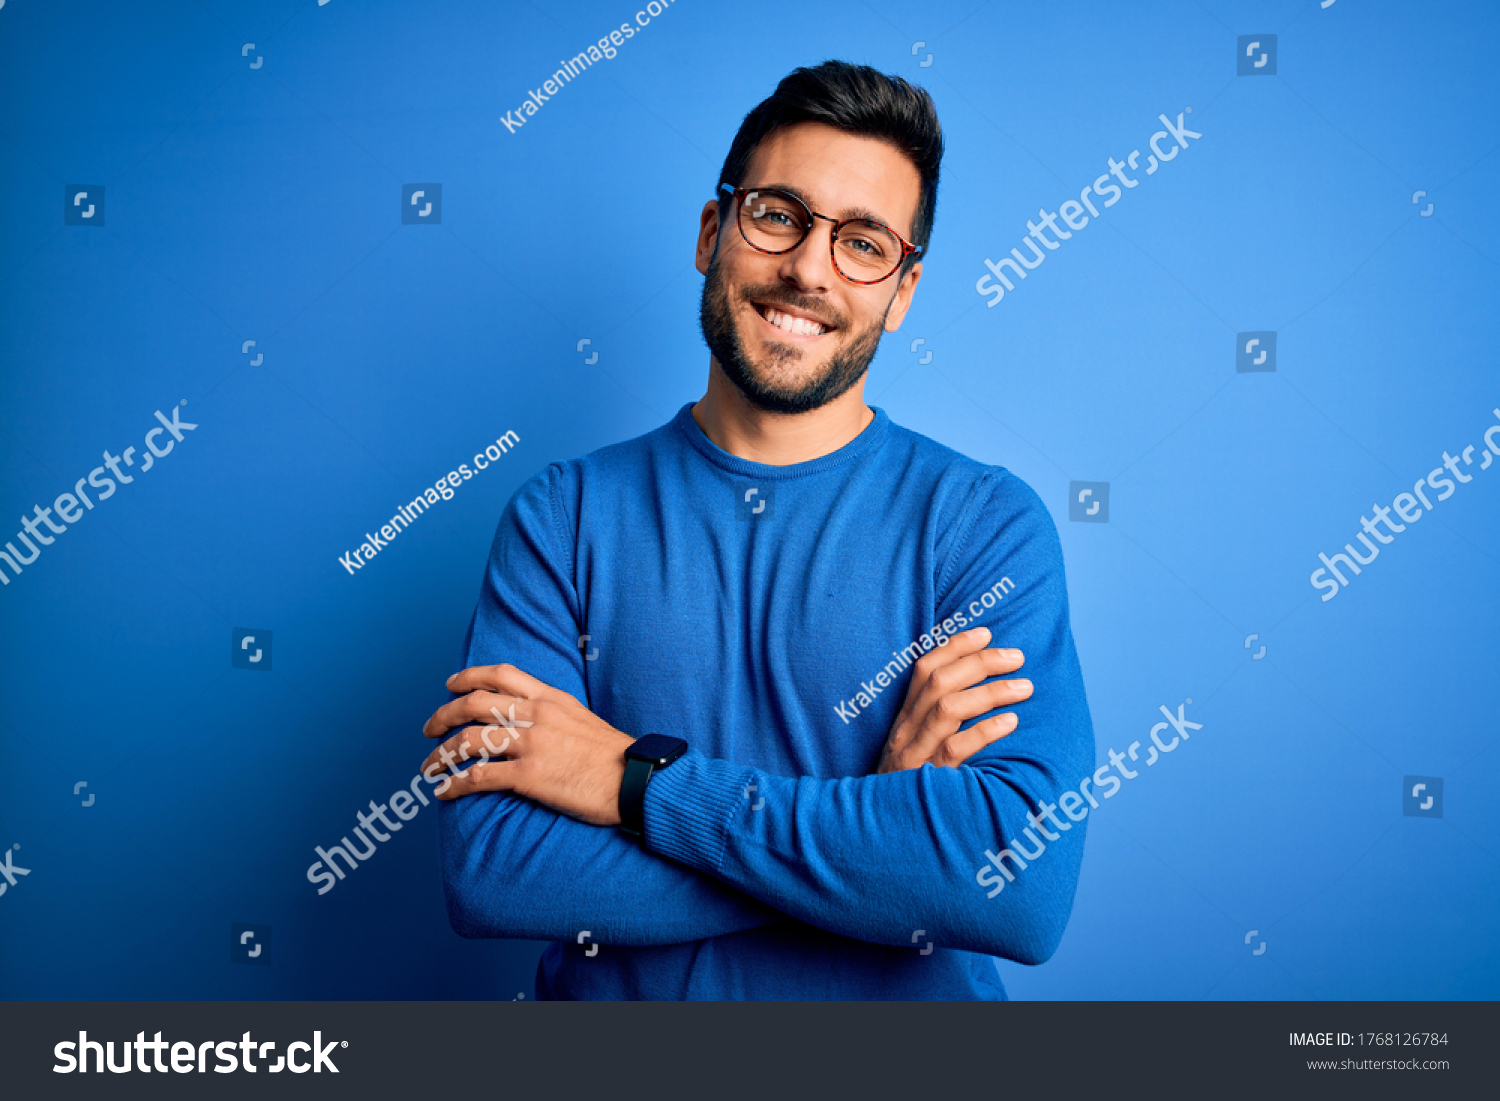 Young handsome man with beard wearing casual sweater and glasses over blue background happy face smiling with crossed arms looking at the camera. Positive person. #1768126784